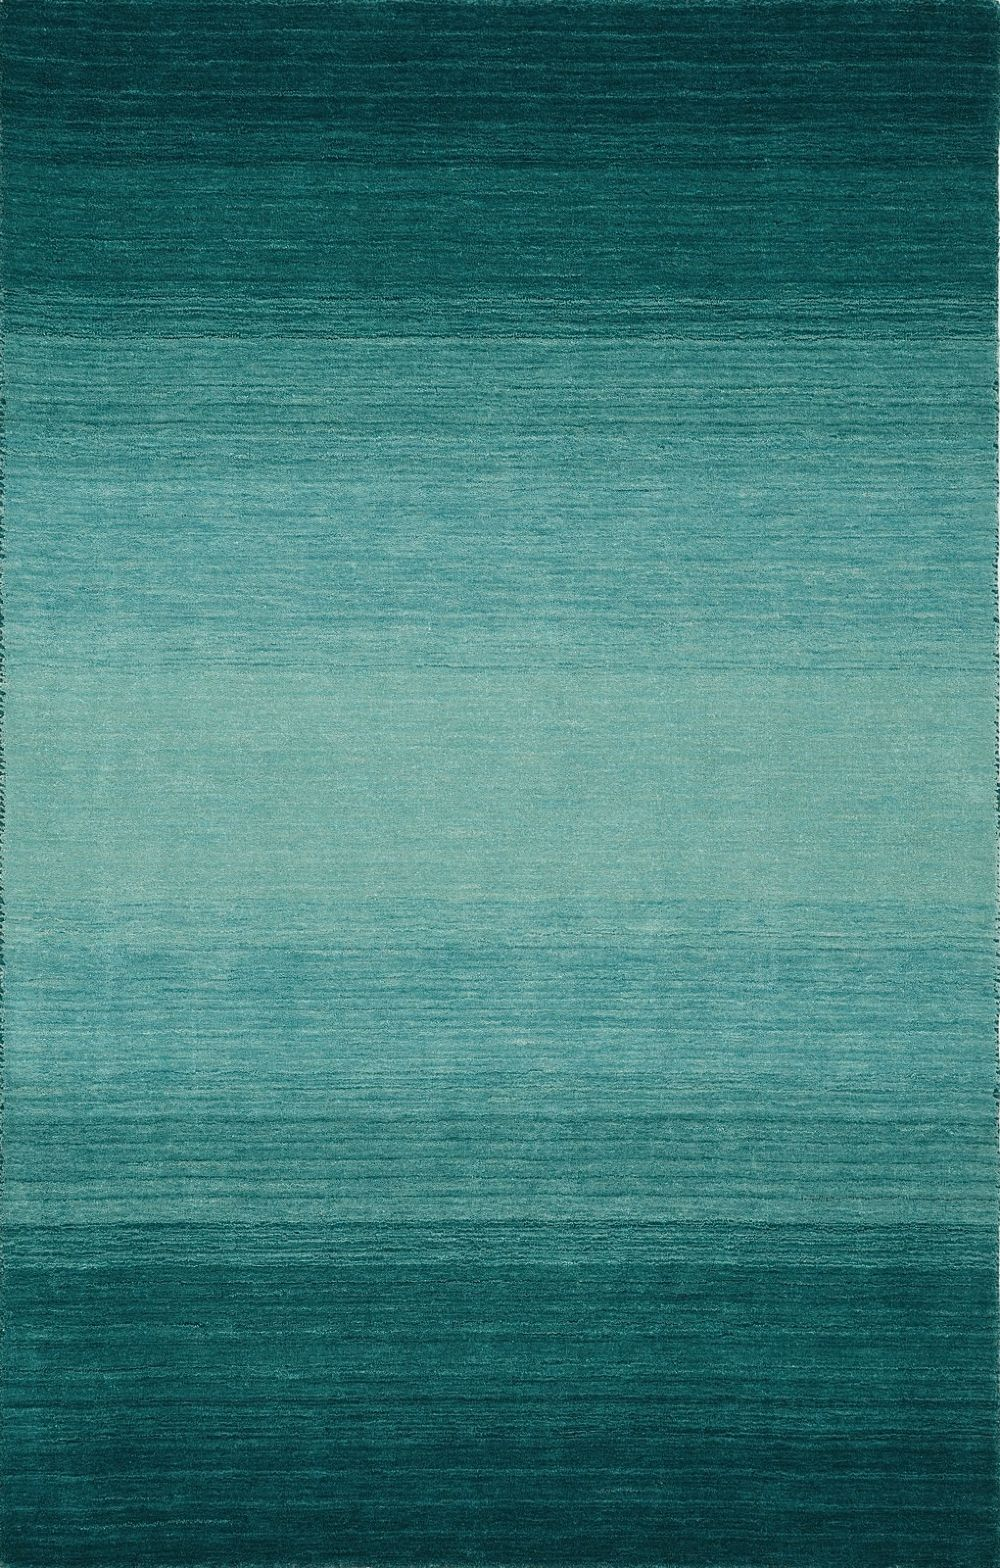 dalyn torino solid/striped area rug collection